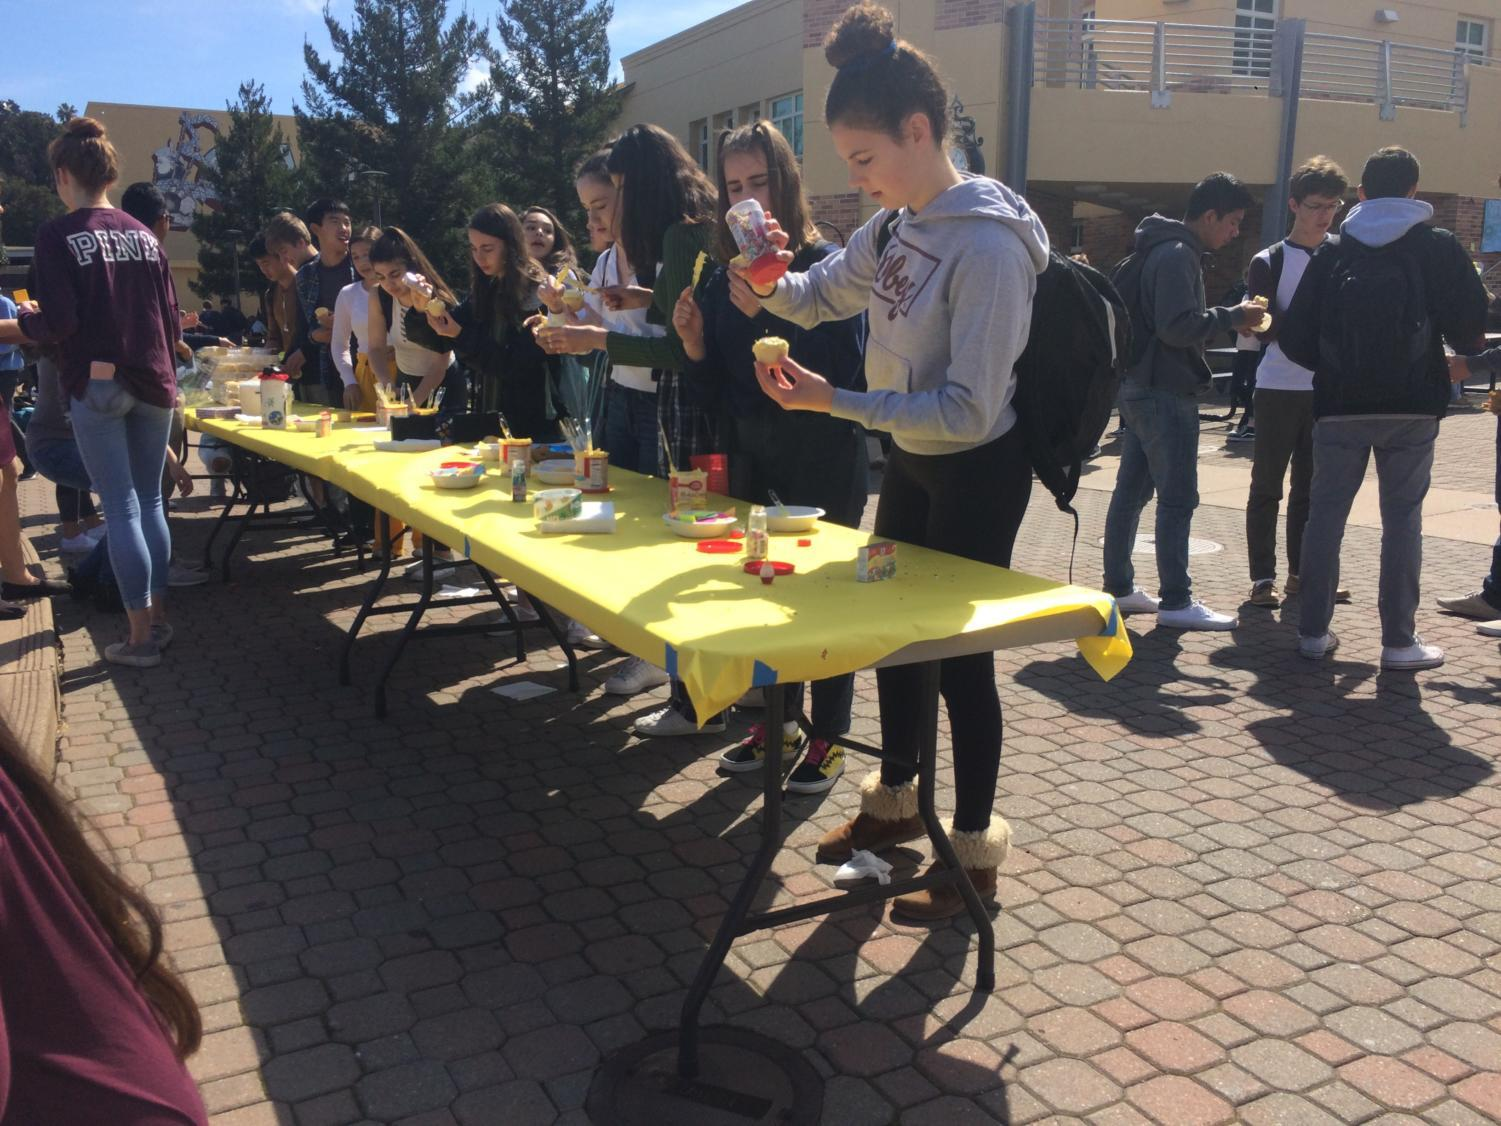 Another+activity+was+decorating+cupcakes+in+the+quad+with+proceeds+going+towards+achieving+gender+equality.